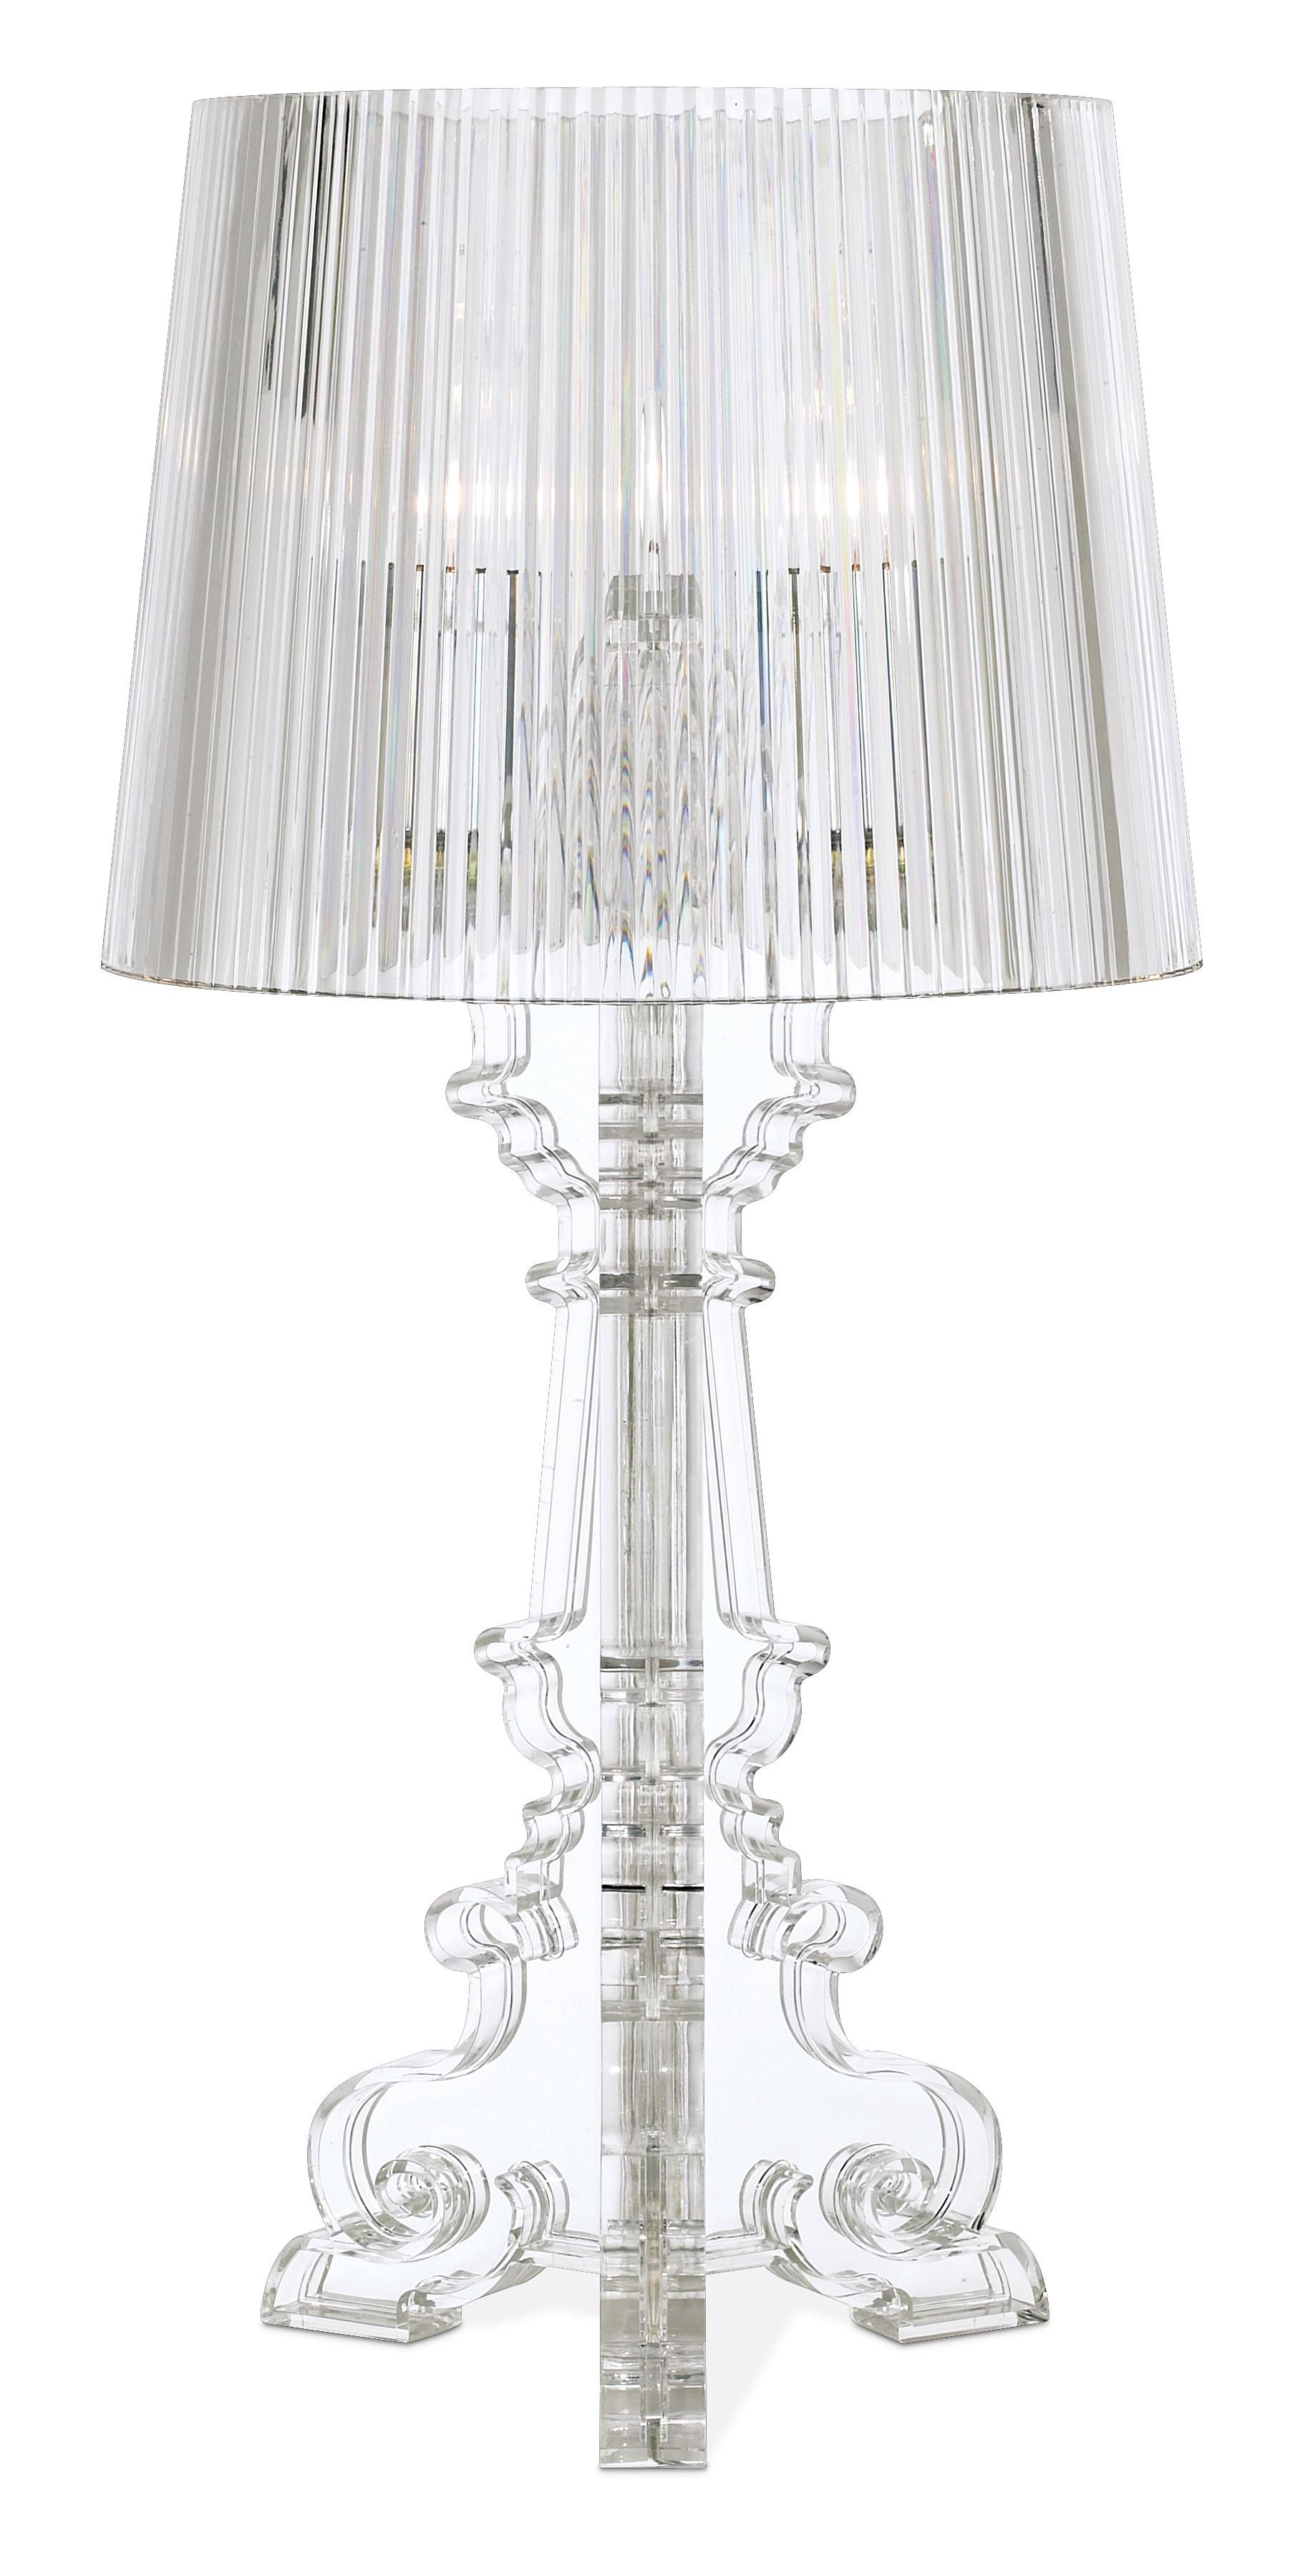 Baroque clear acrylic 20 high accent table lamp acrylic table baroque clear acrylic 20 high accent table lamp 97645 lamps plus mozeypictures Image collections